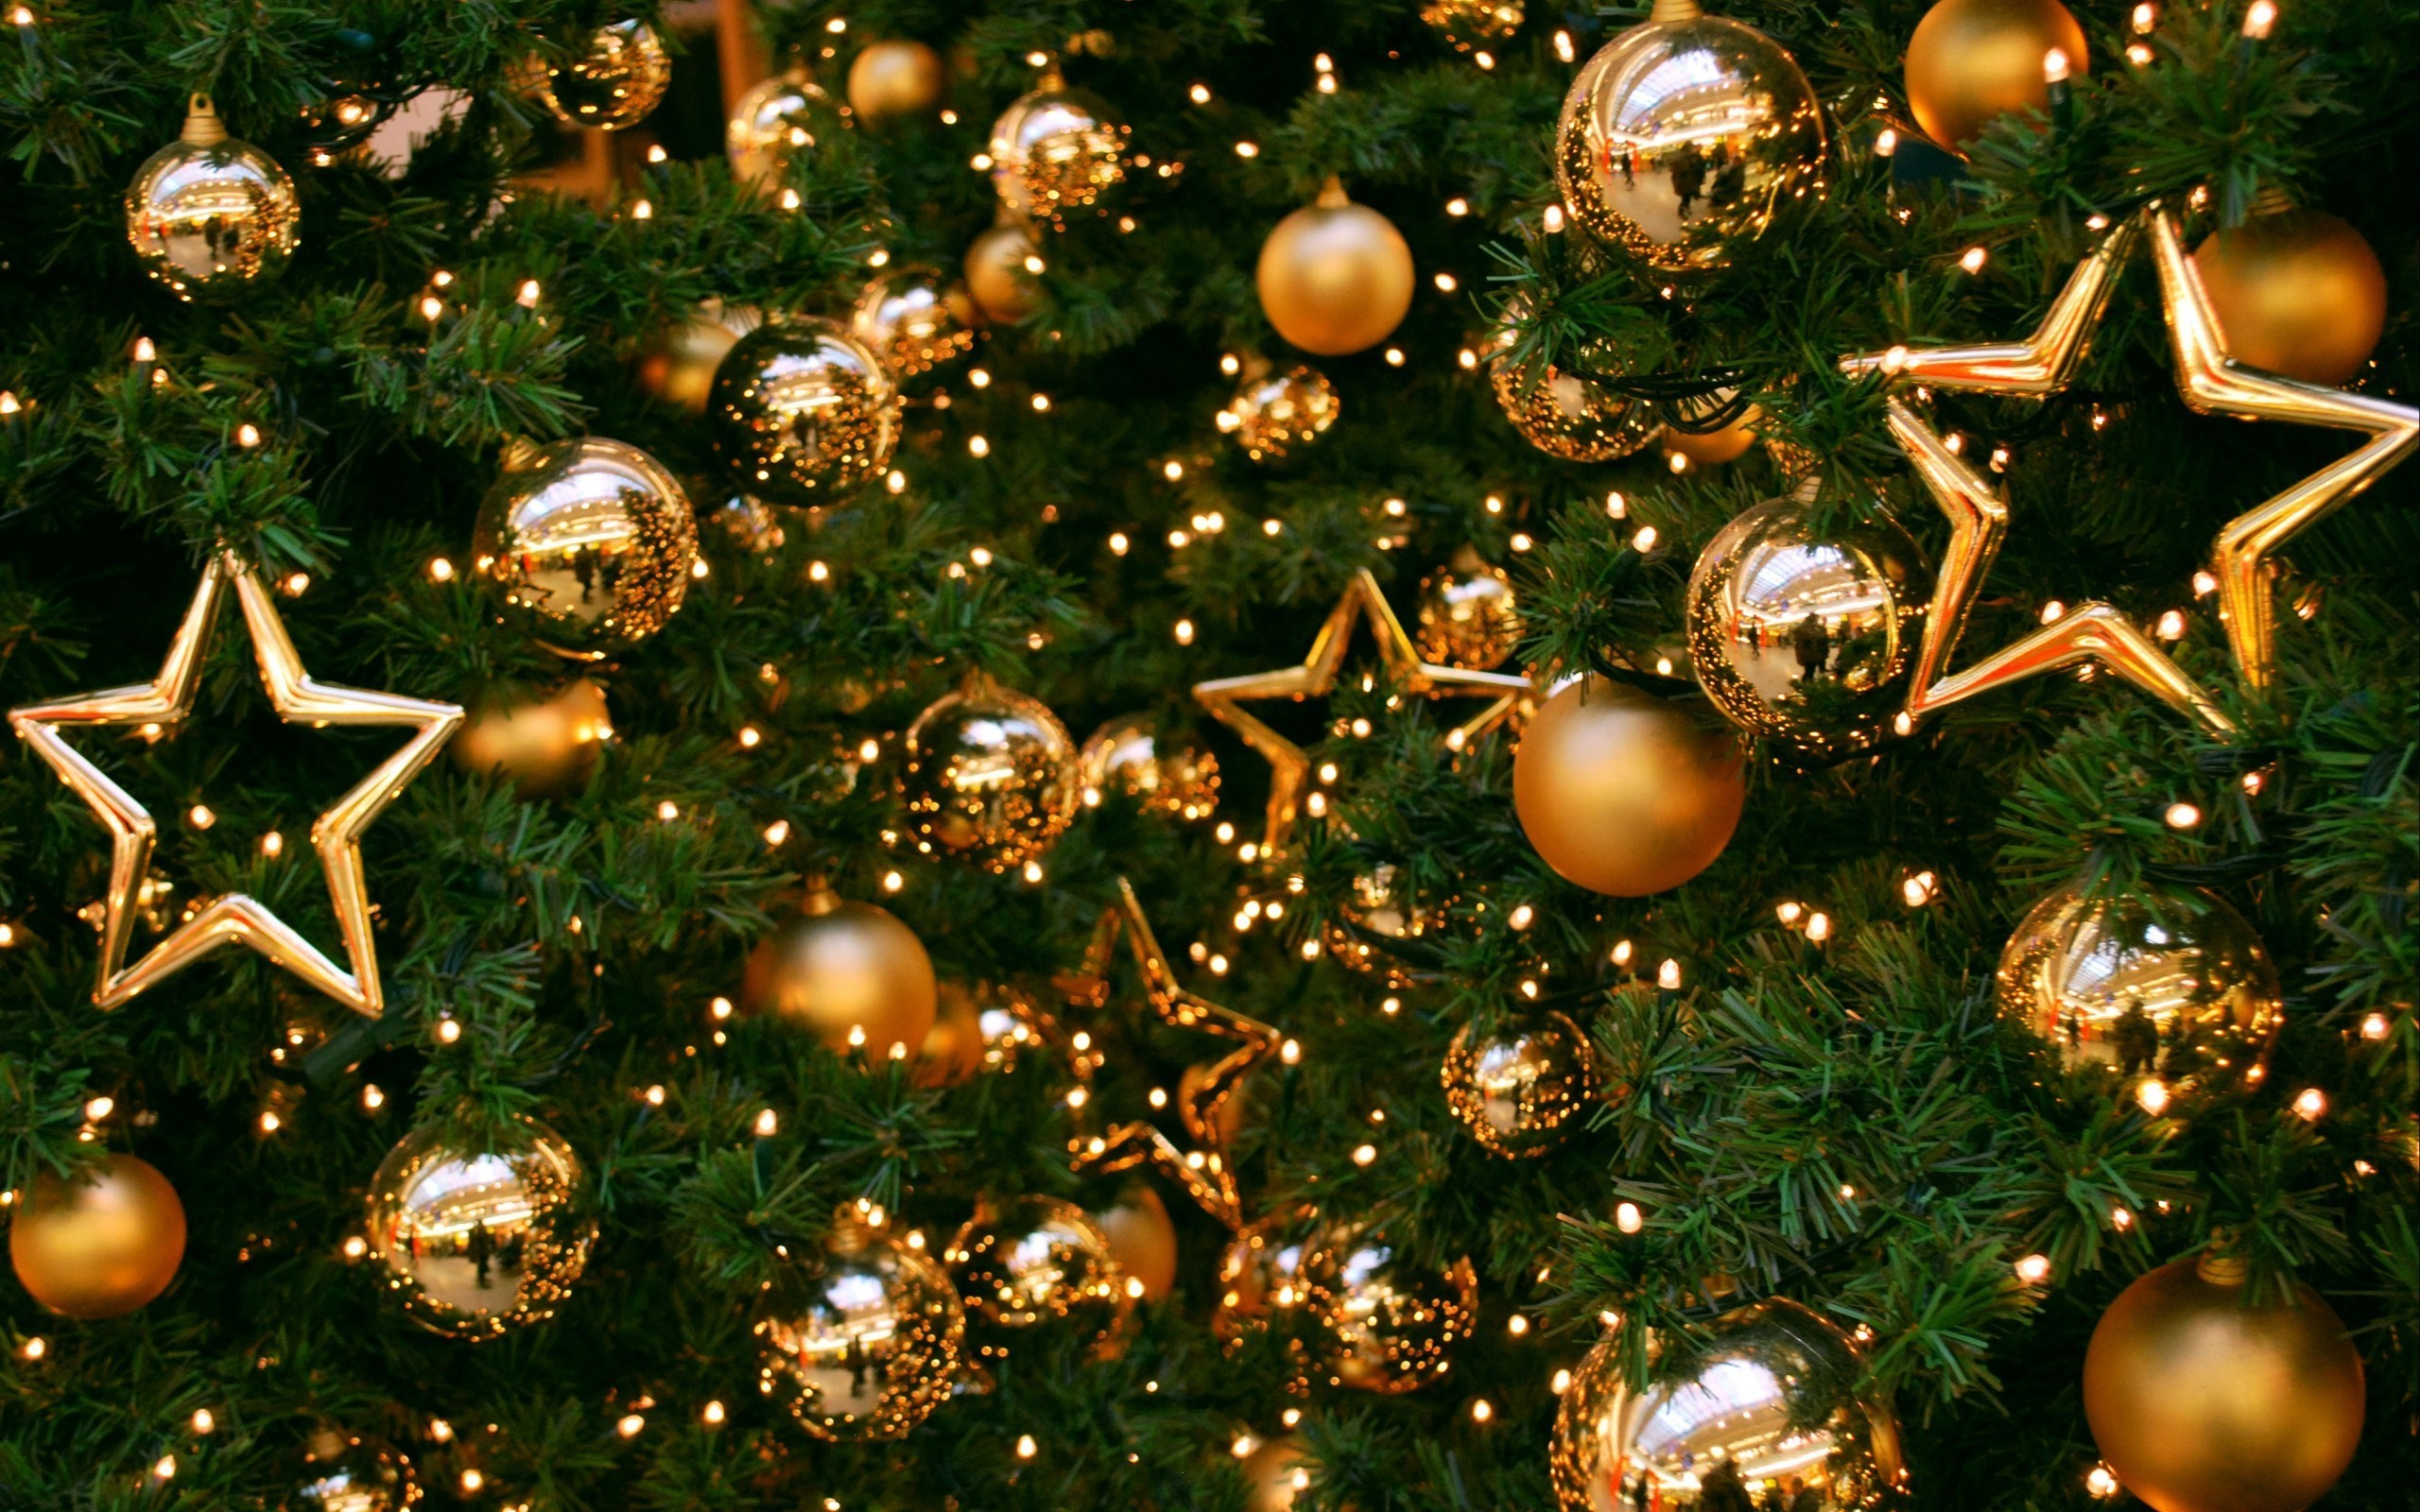 727805 large christmas backgrounds 2560x1600 for hd